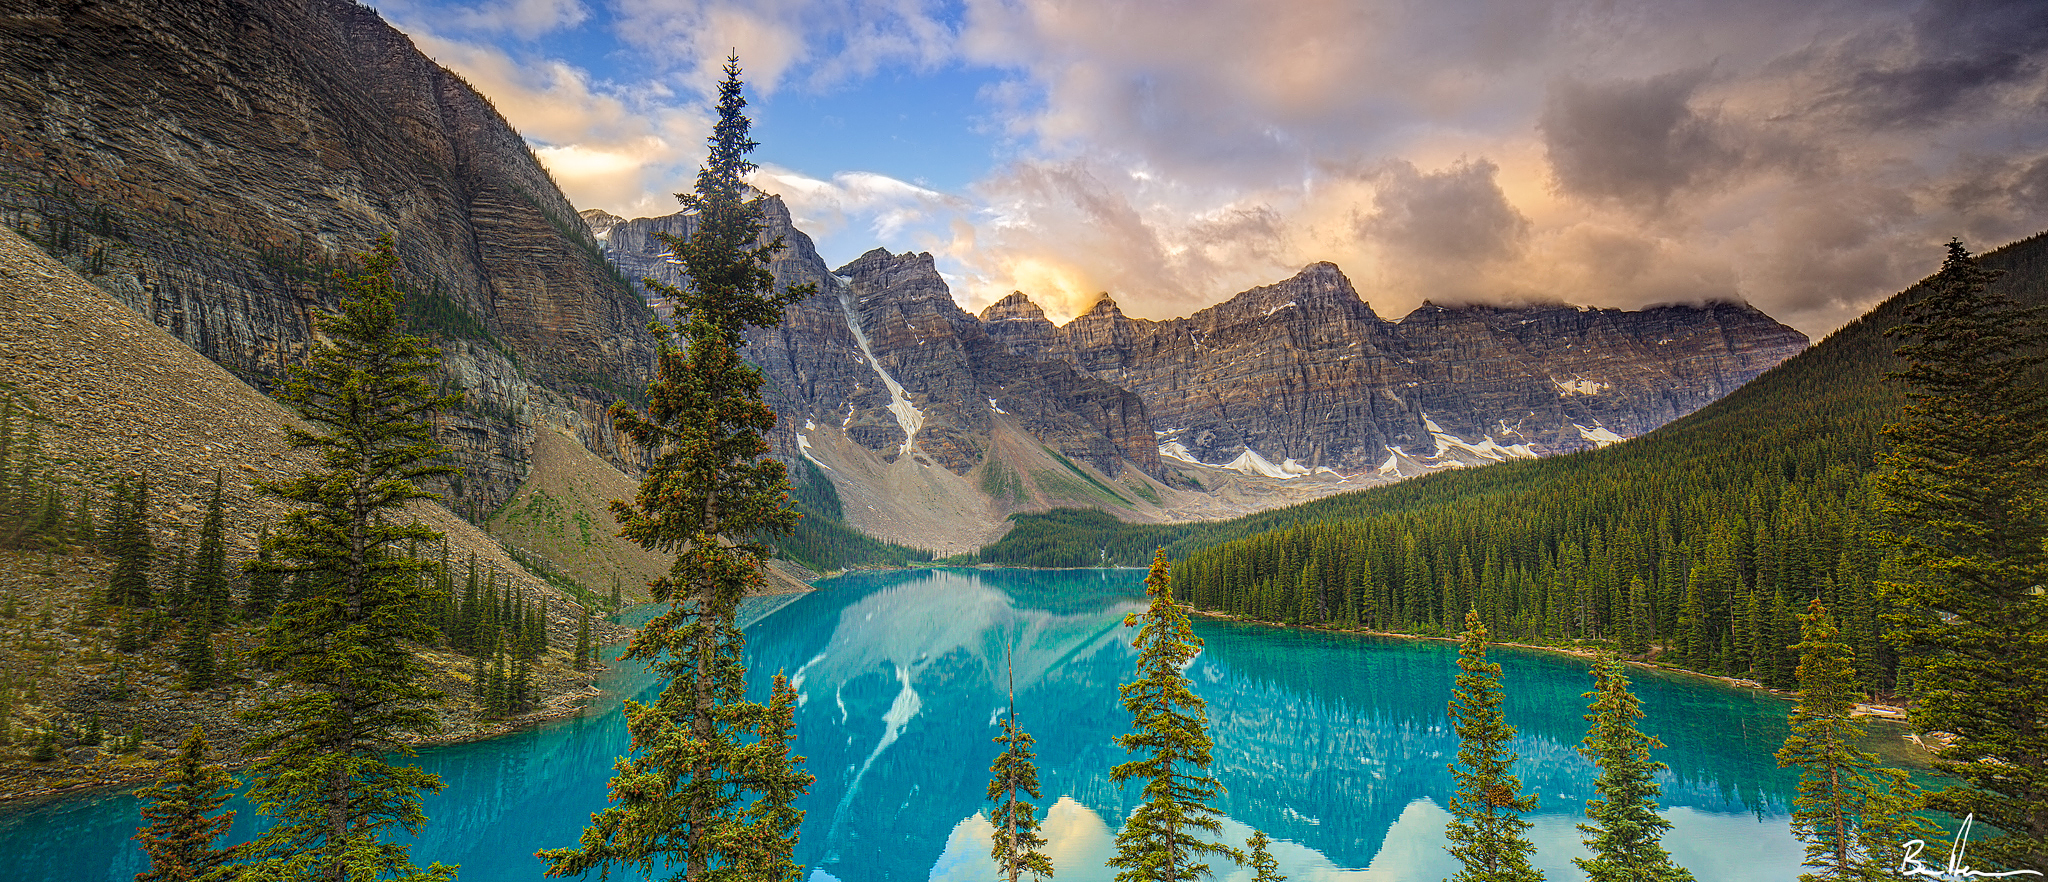 "Moraine Lake, Banff National Park in Alberta. The GPS was used to geotag the photograph. Enter the coordinates into google maps and it will come up with my exact location!   51°19'39"" N 116°10'48"" W"